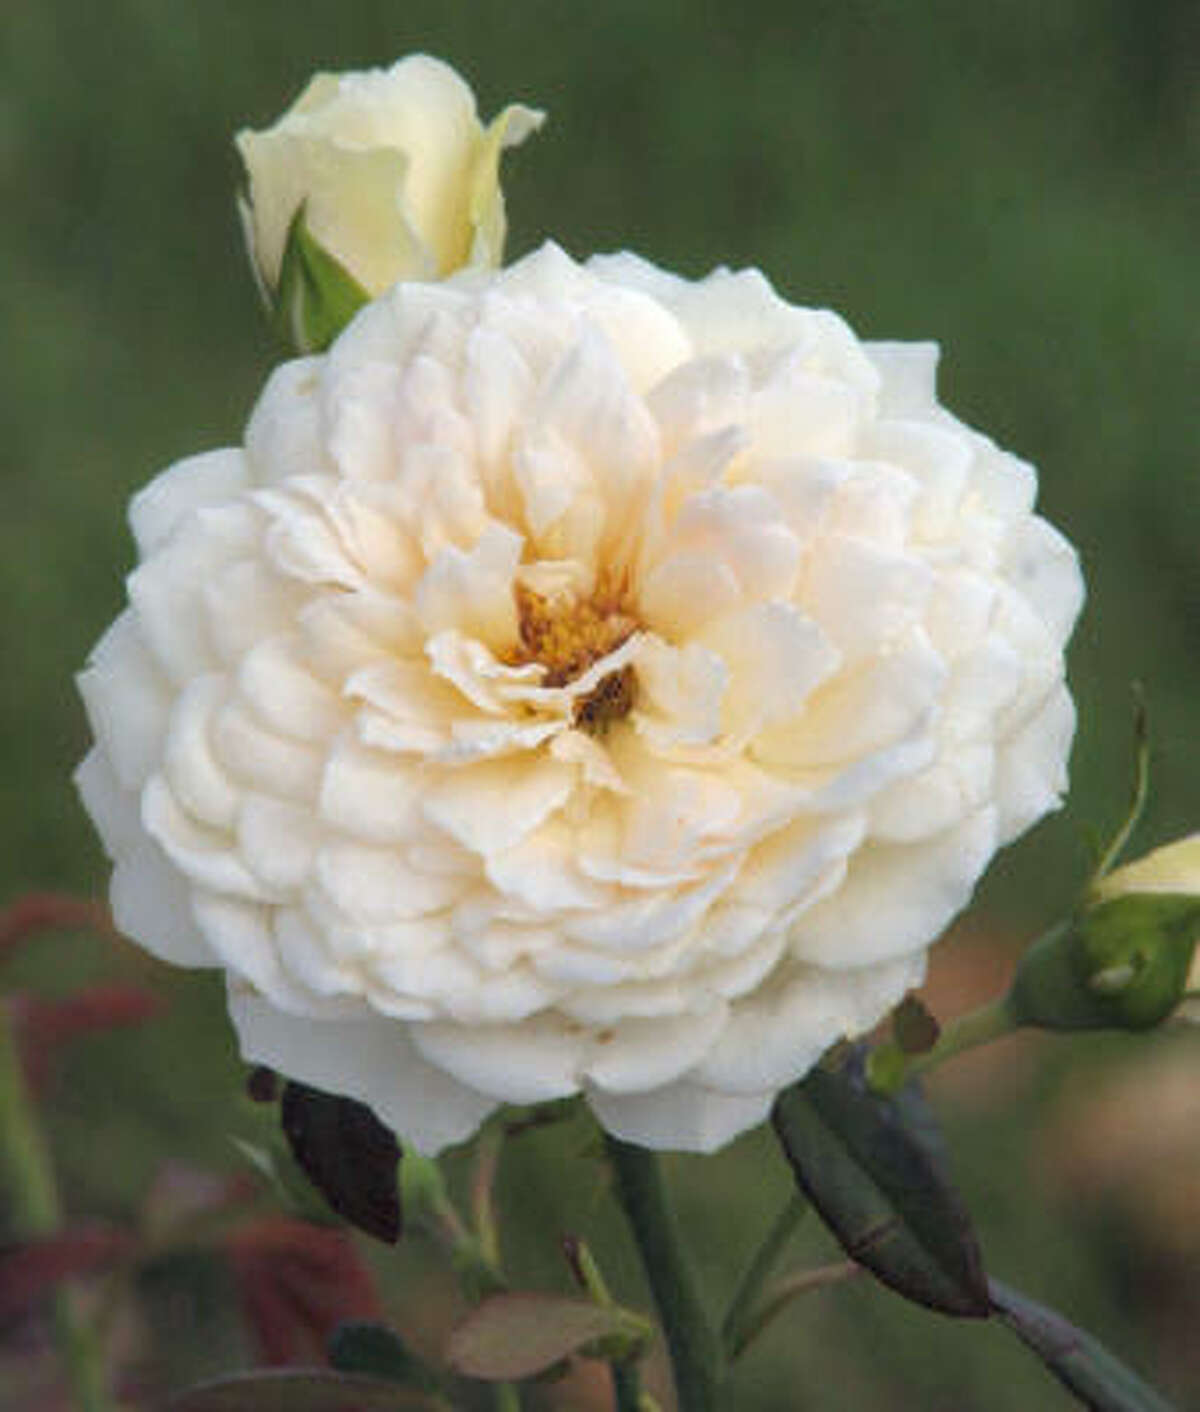 Sombreuil, a fragrant rose that is large, flat-quartered with creamy white blooms.